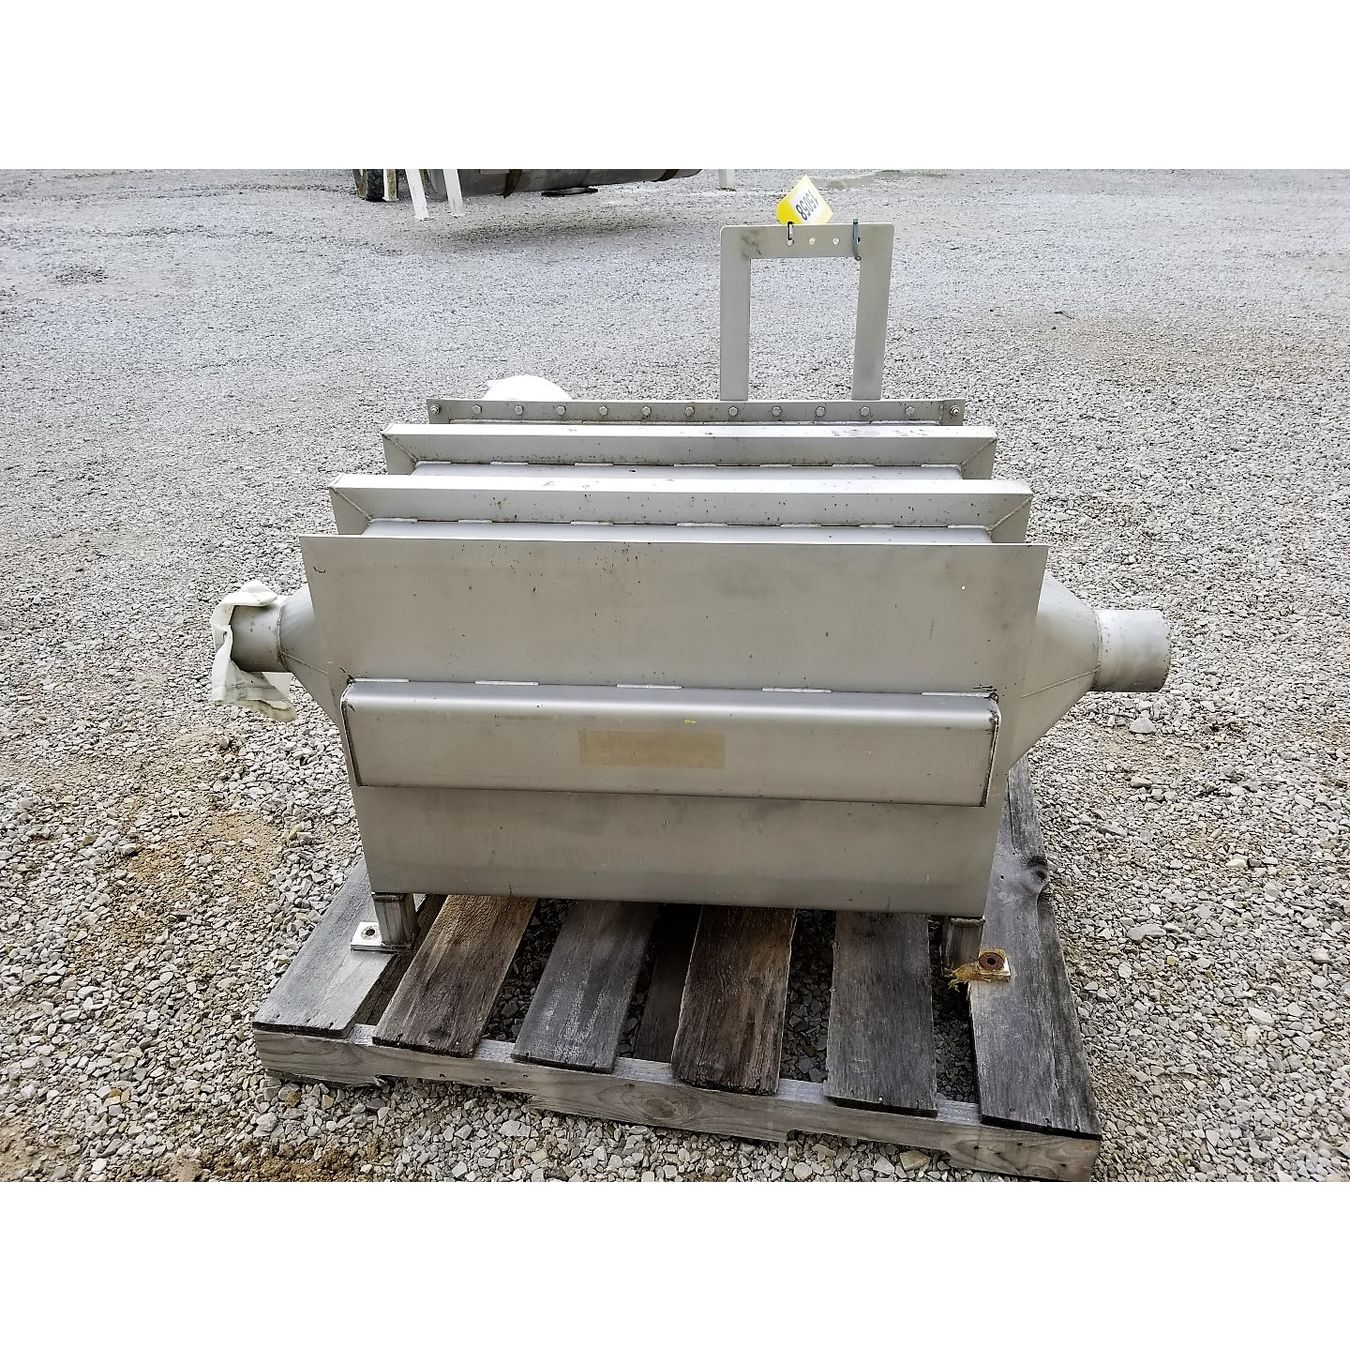 Air Heat Exchanger ~ Used xchanger air heat exchanger c exchangers